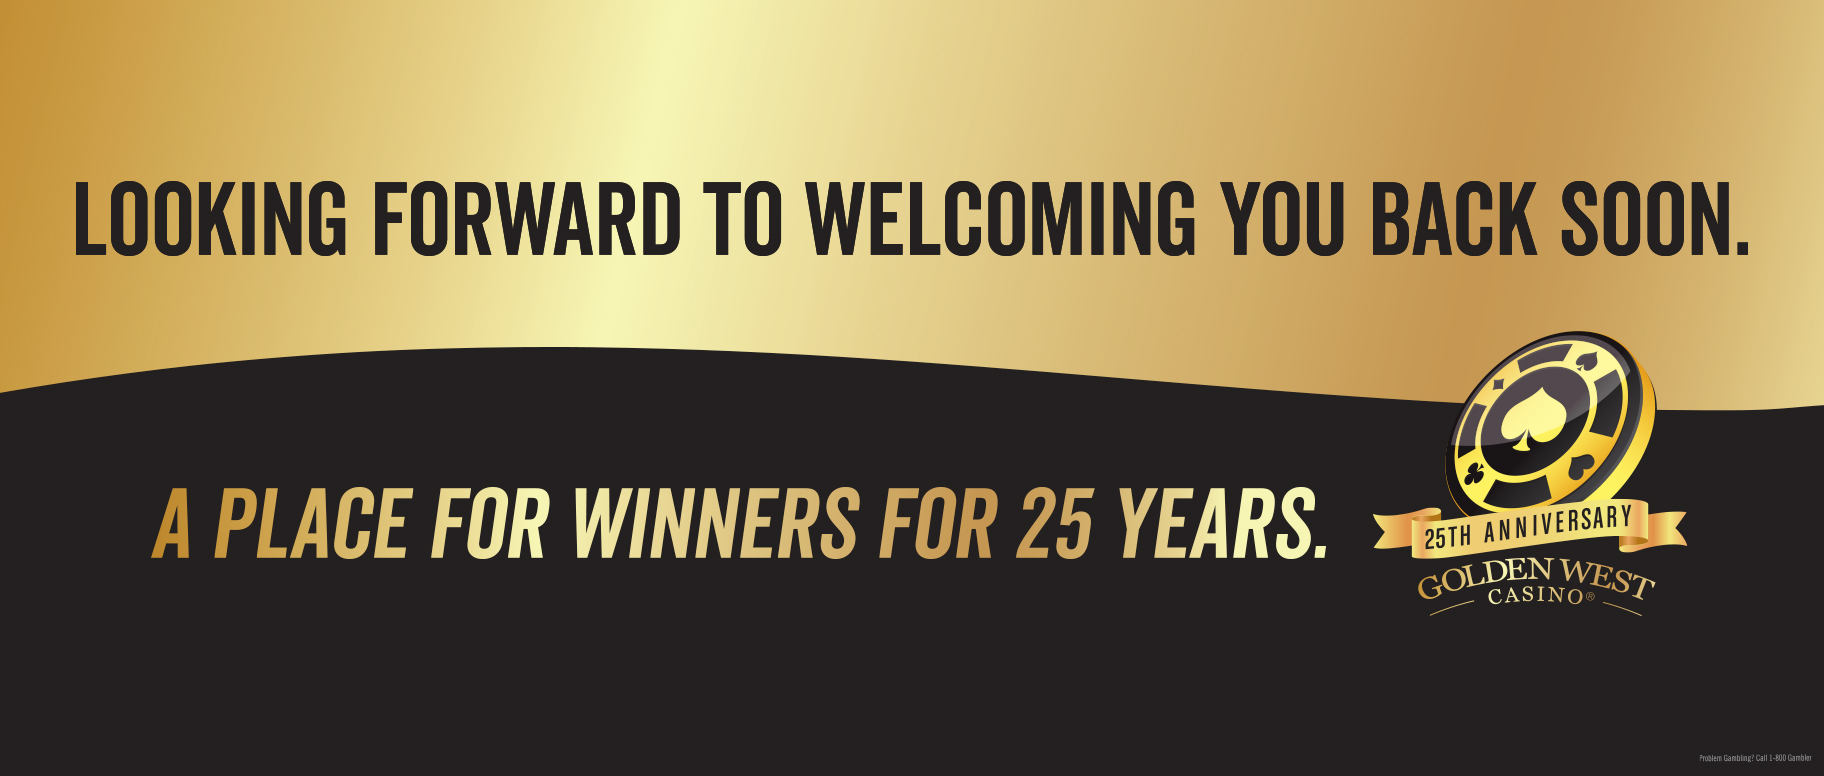 Looking Forward To Welcoming You Back Soon. A Place For Winners For 25 Years.